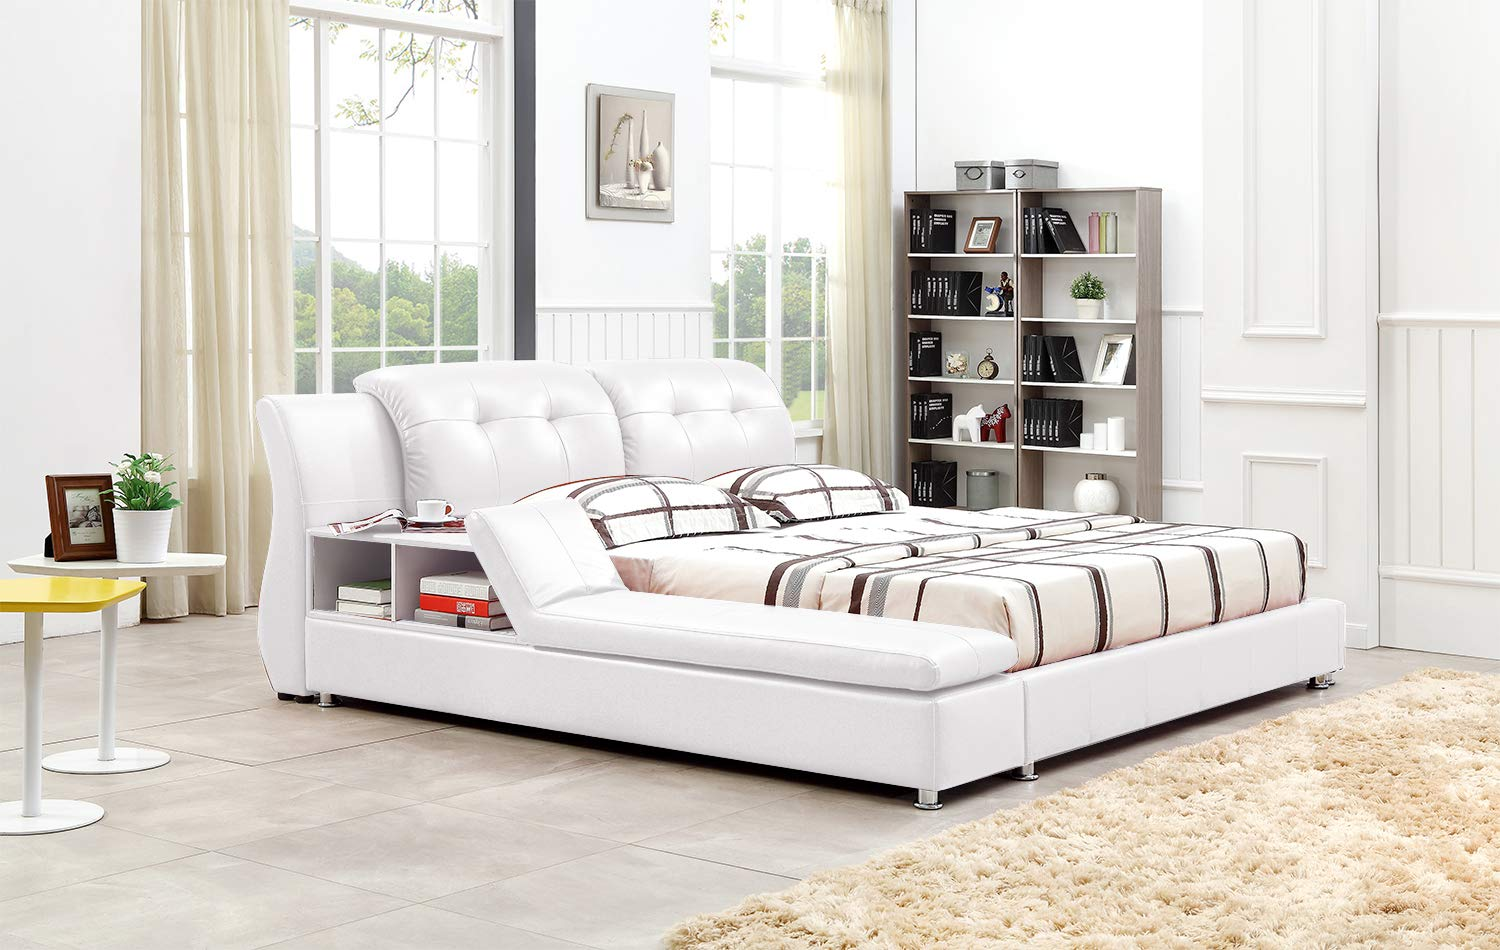 Greatime B2003 Platform Bed (Queen, White)